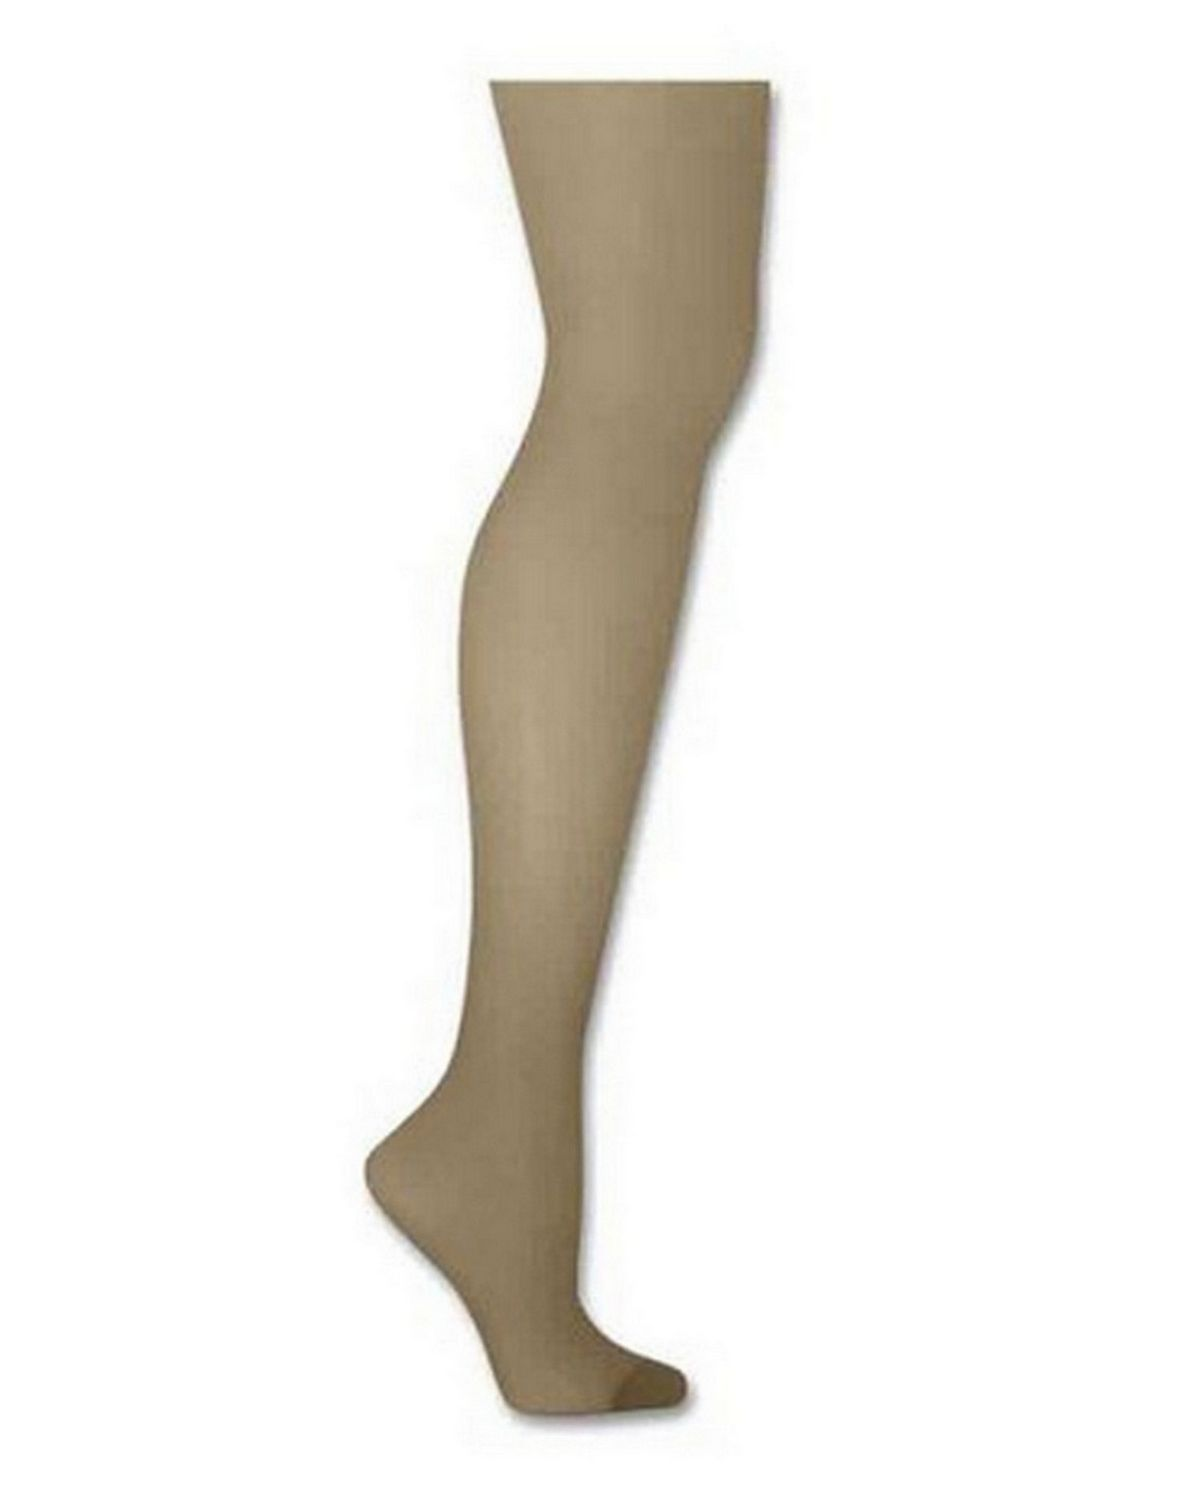 Hanes 00718 Silk Reflections Control Top Reinforced Toe Pantyhose - Natural - CD 00718